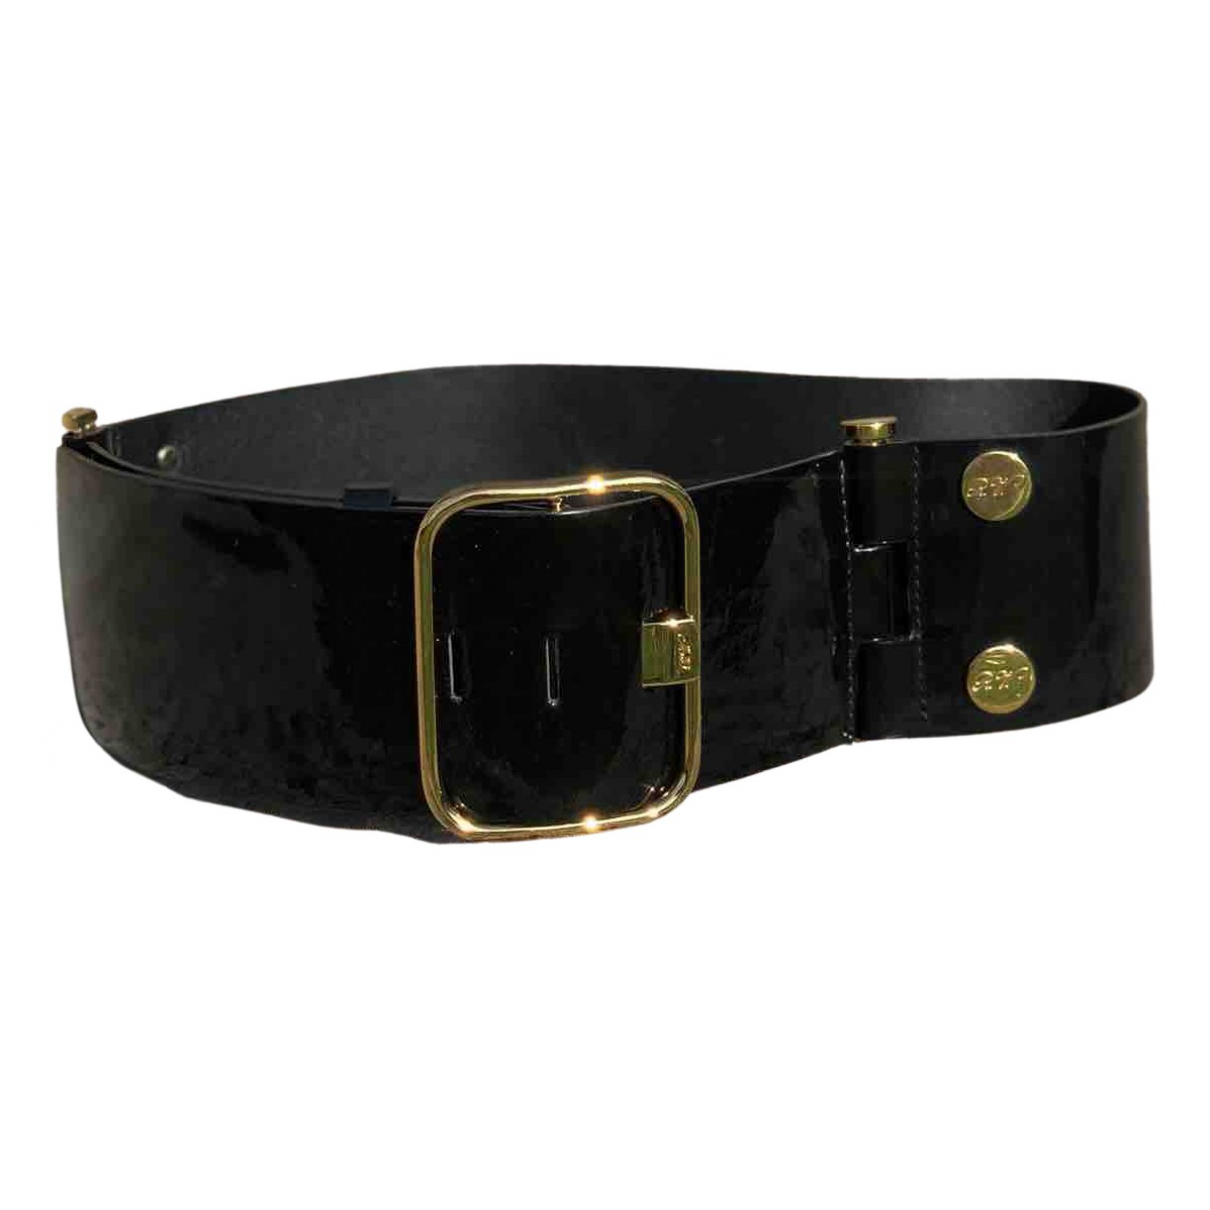 Roger Vivier N Black Patent leather belt for Women 75 cm